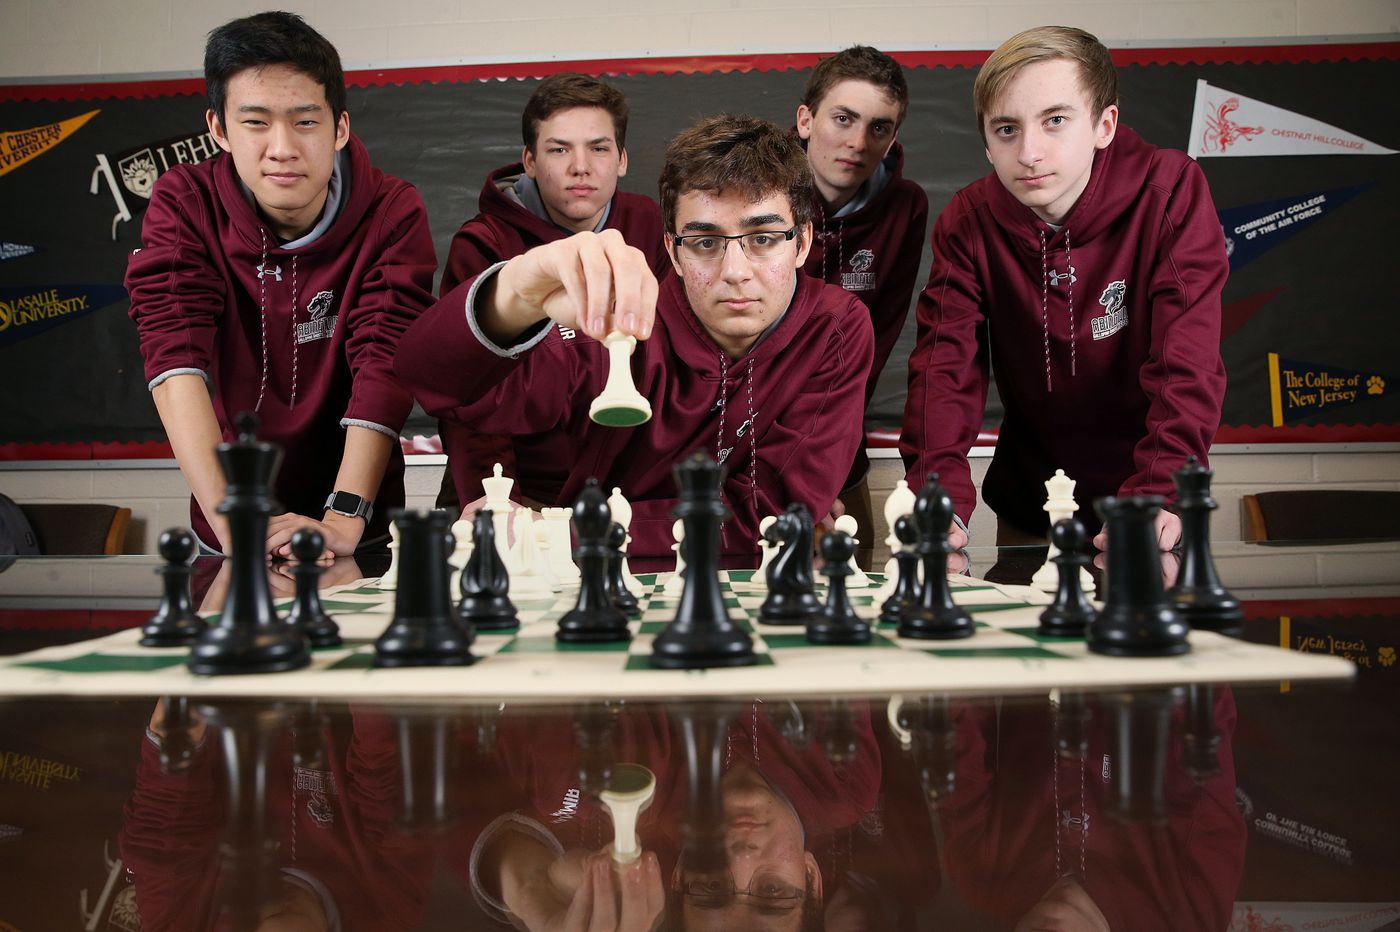 Abington Senior HS takes first place in national contest that requires endurance, smarts, and psyching out your opponent